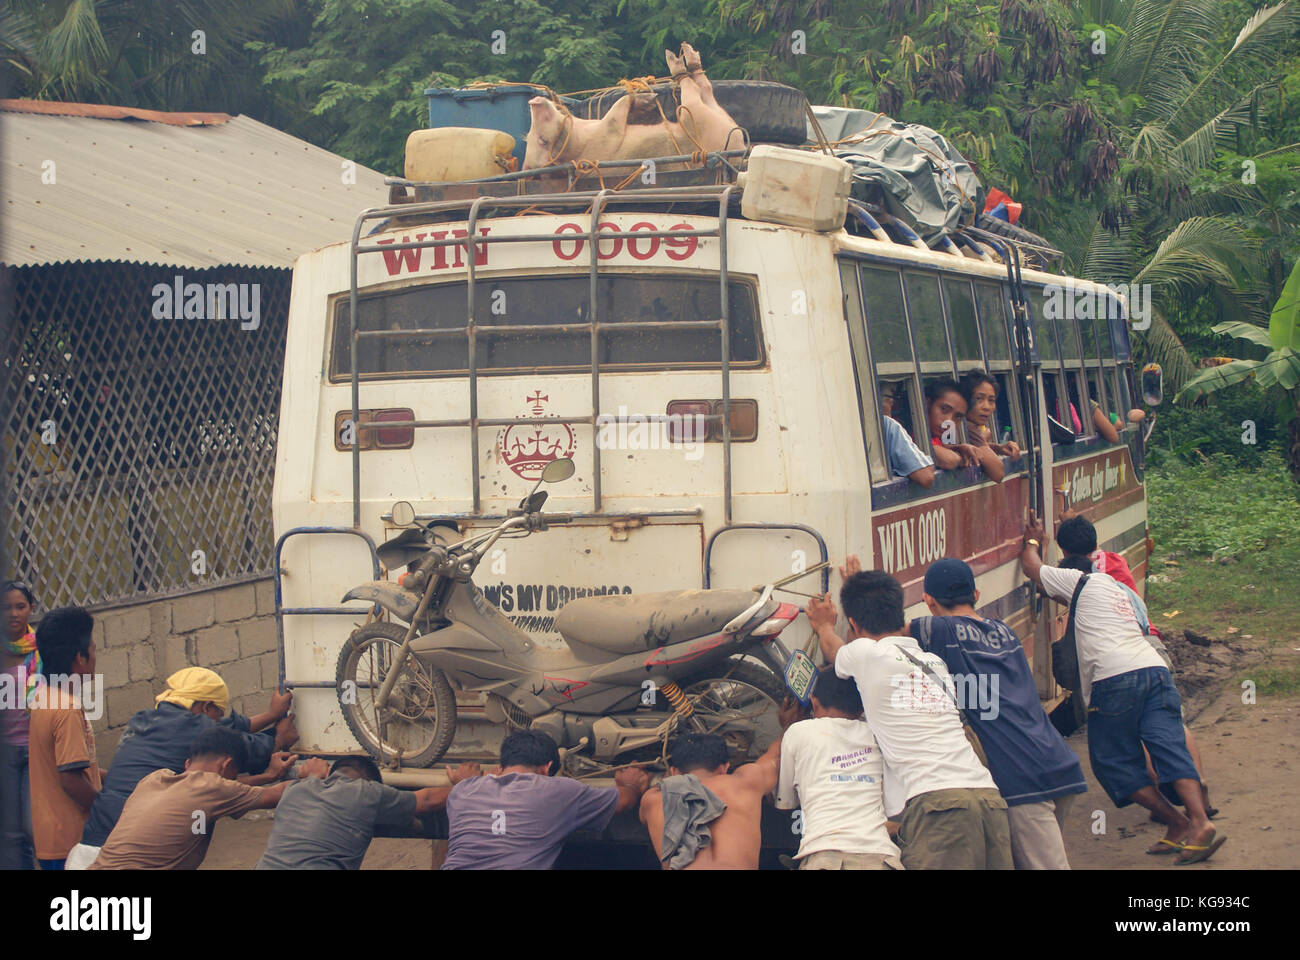 Palawan, Philippines - May 17, 2009: Local people push the overloaded bus stuck in the muddy road. Journey from - Stock Image